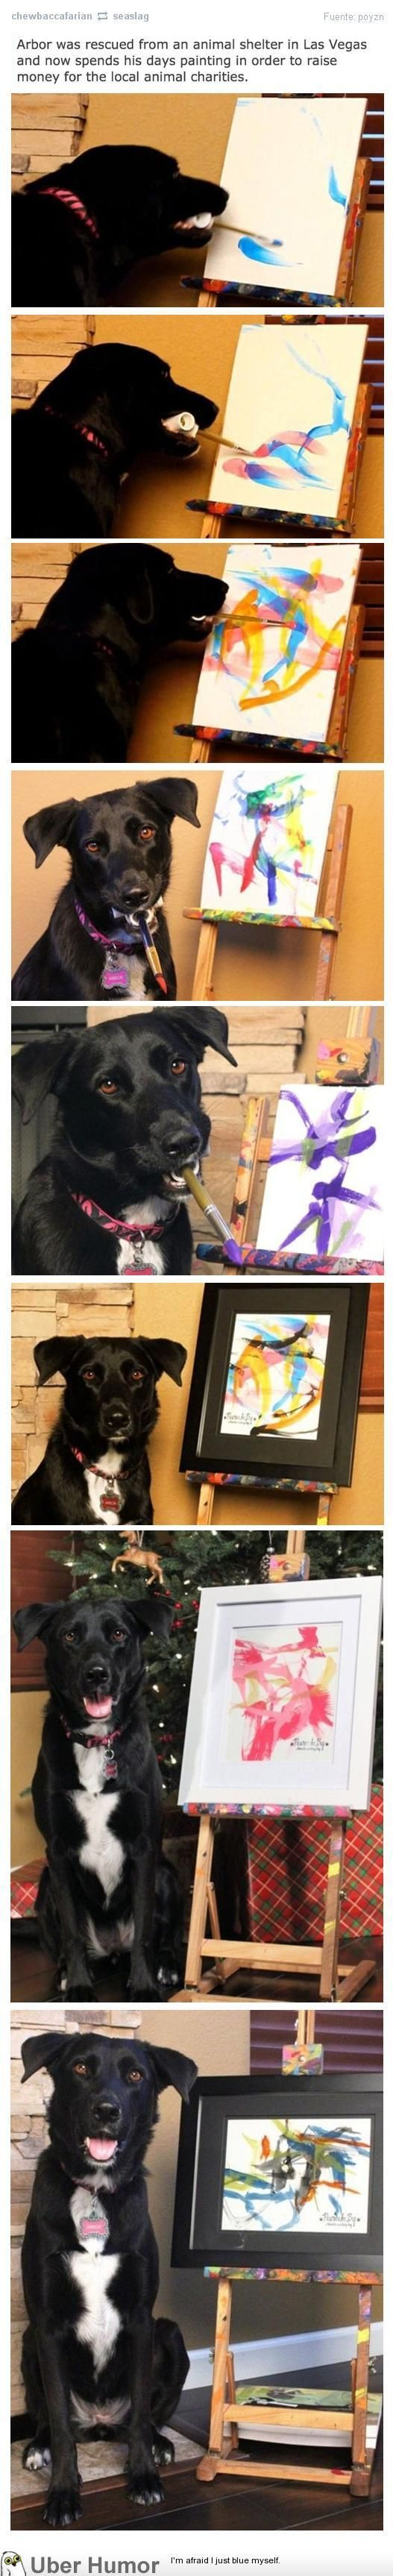 Hilarious Lawyer Dog Memes You Need to See Wow! Arbor the rescue dog paints to raise money for charity!